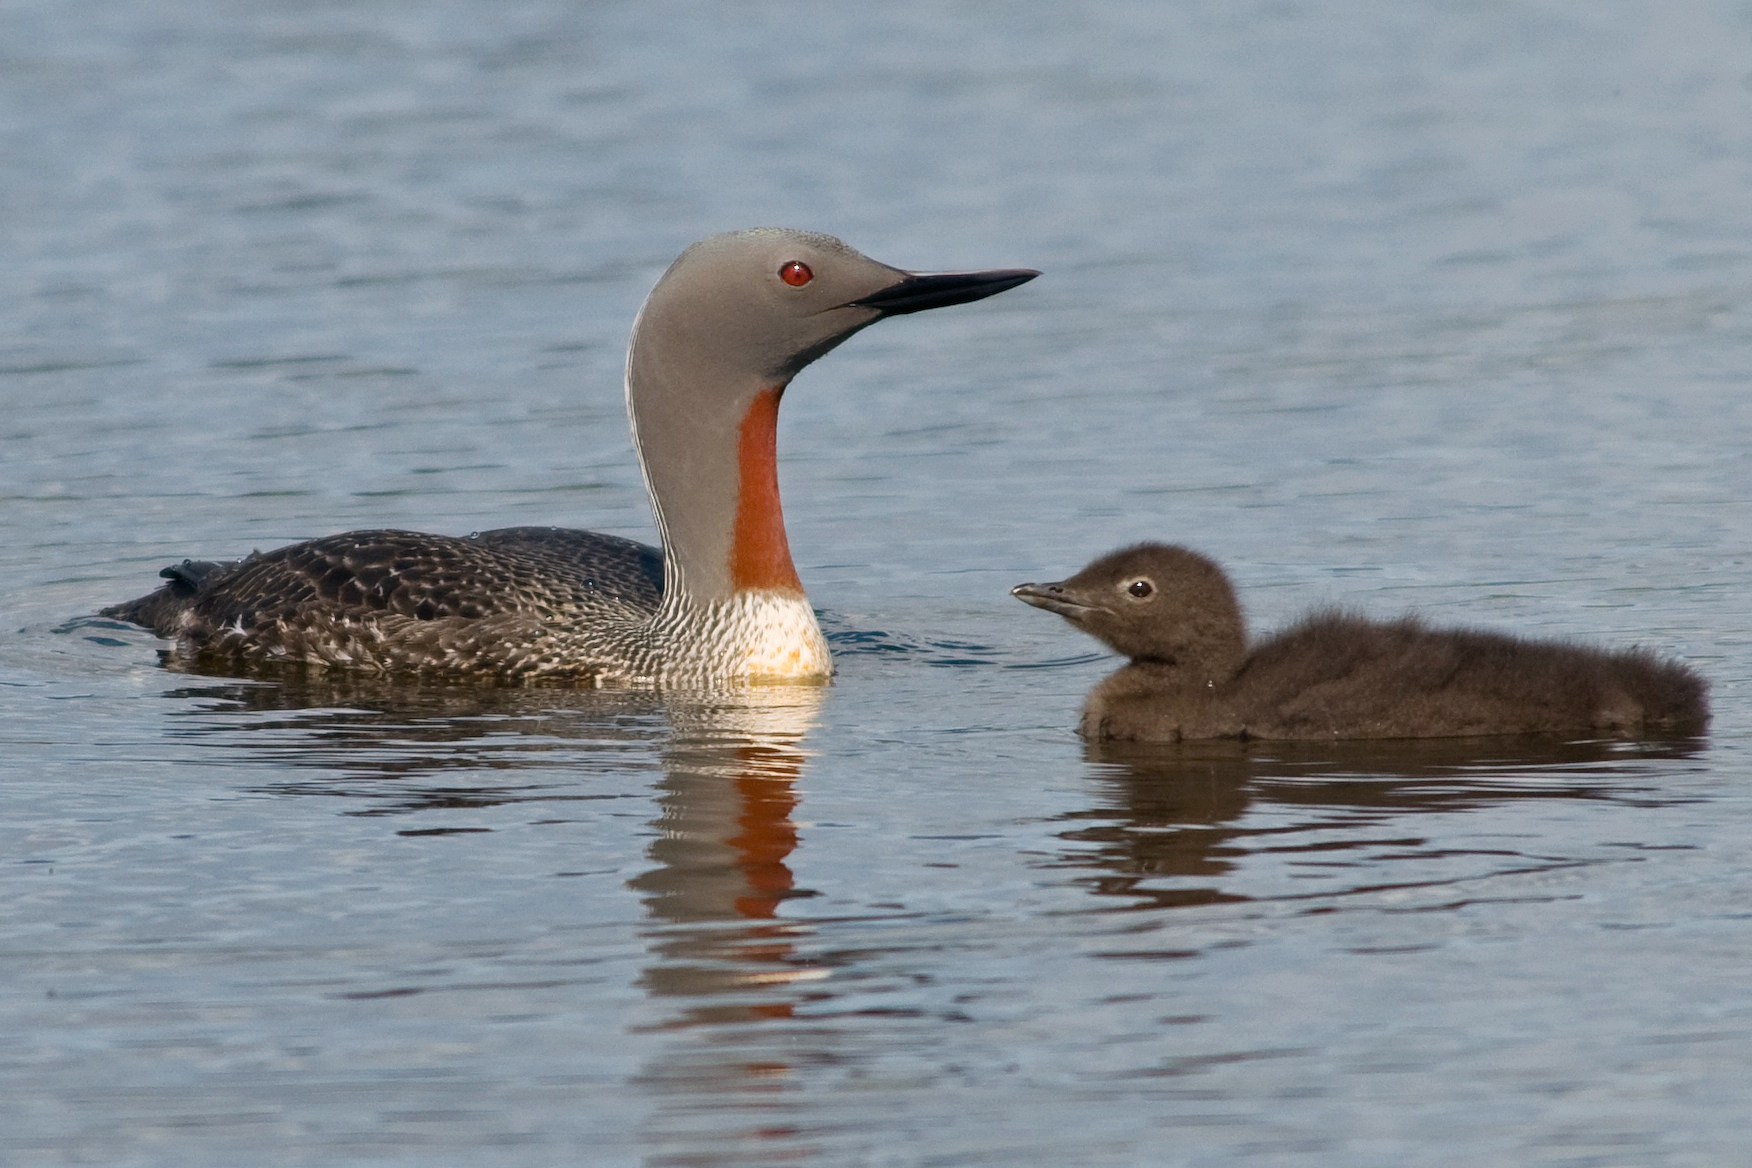 Red-throated loon with chick